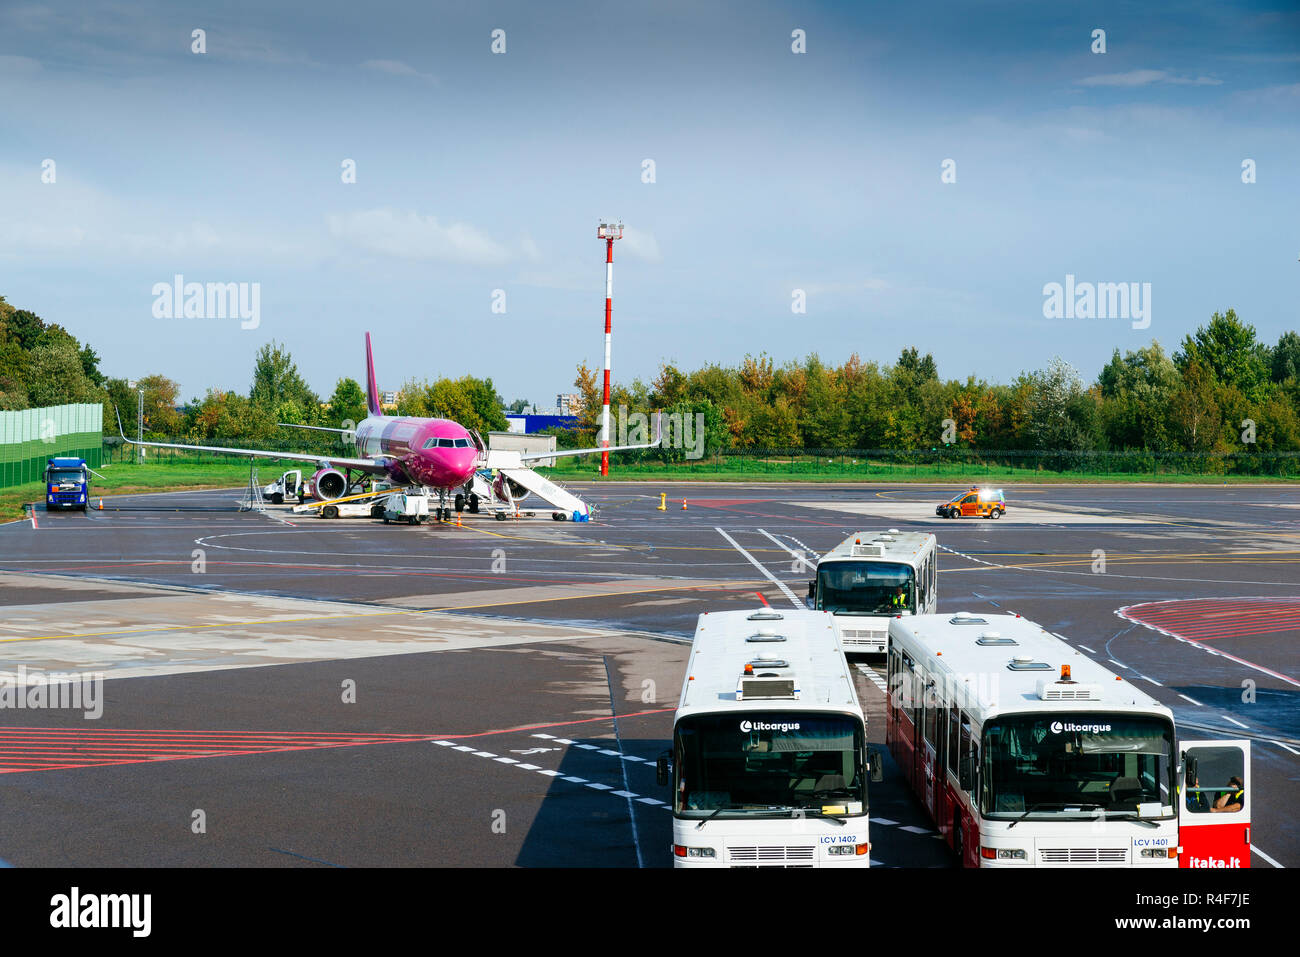 landed plane, Wizz Air,Hungarian low-cost airline, in the Vilnius Airport. Vilnius, Vilnius County, Lithuania, Baltic states, Europe. - Stock Image